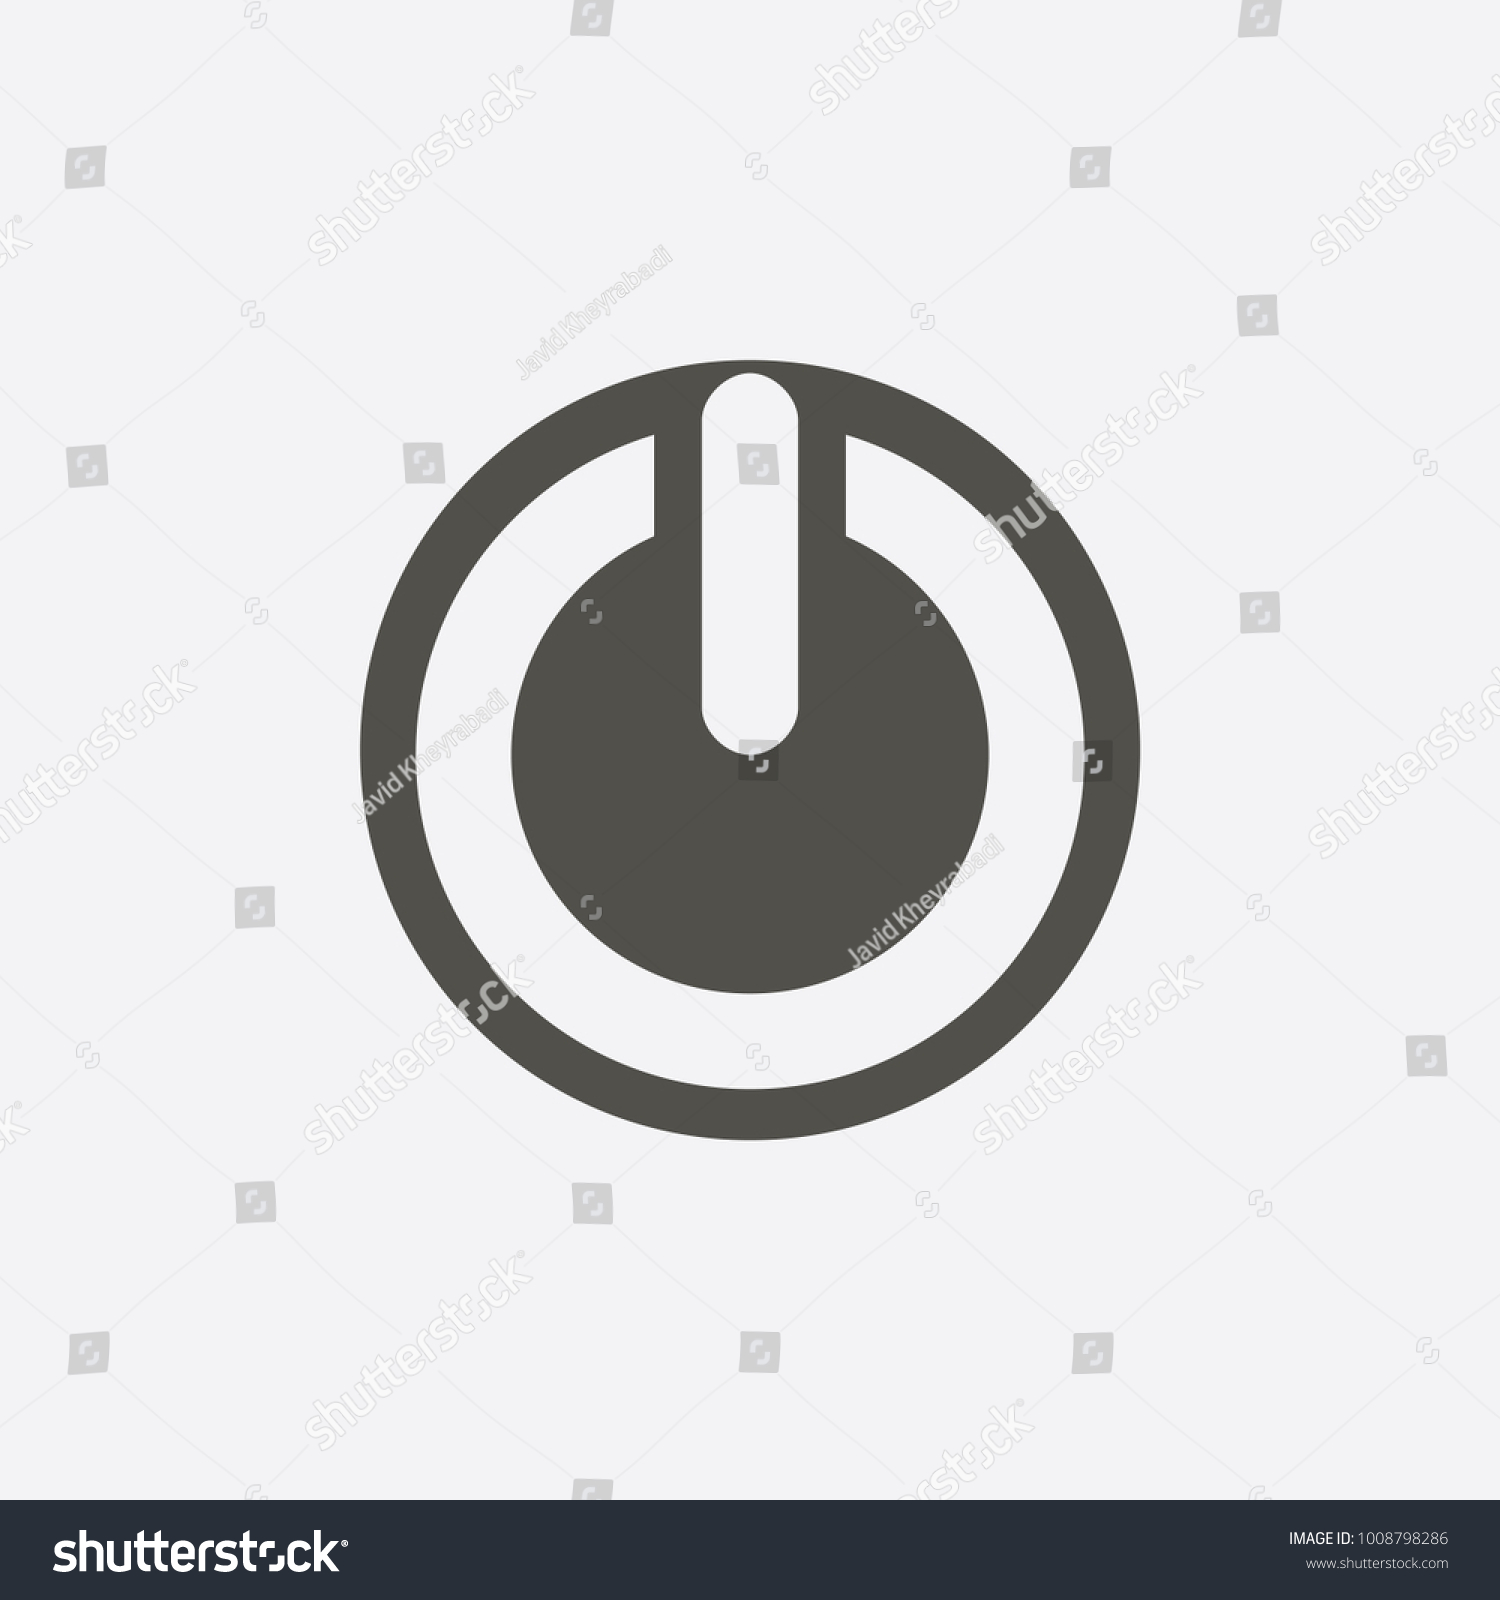 On and off switch symbol circle graph examples generate er diagram fantastic switch off symbol images wiring diagram ideas stock vector on off switch vector icon 1008798286 biocorpaavc Images